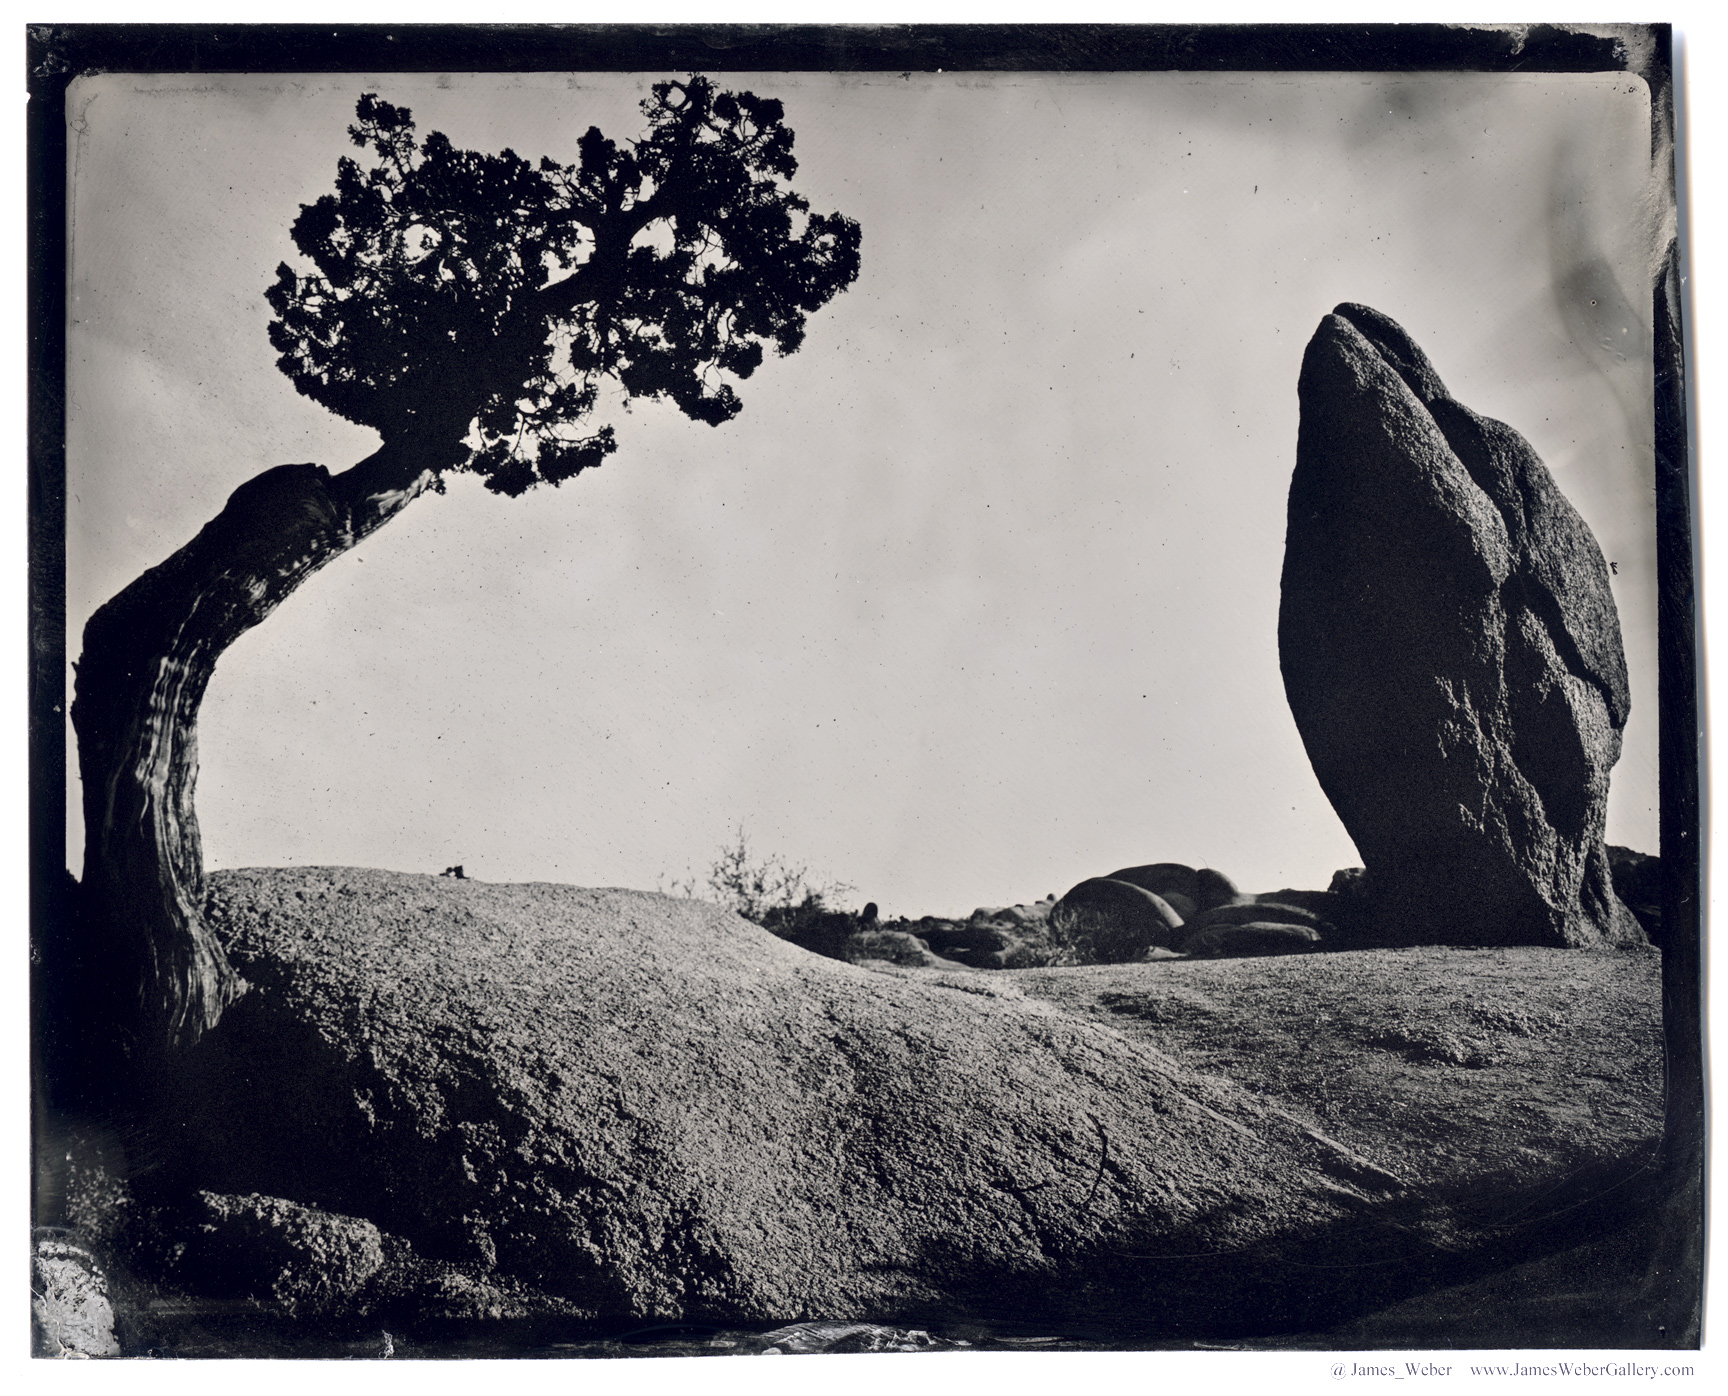 JAMES-WEBER-PHOTOGRAPHER-WET-PLATE-2014-00465.jpg